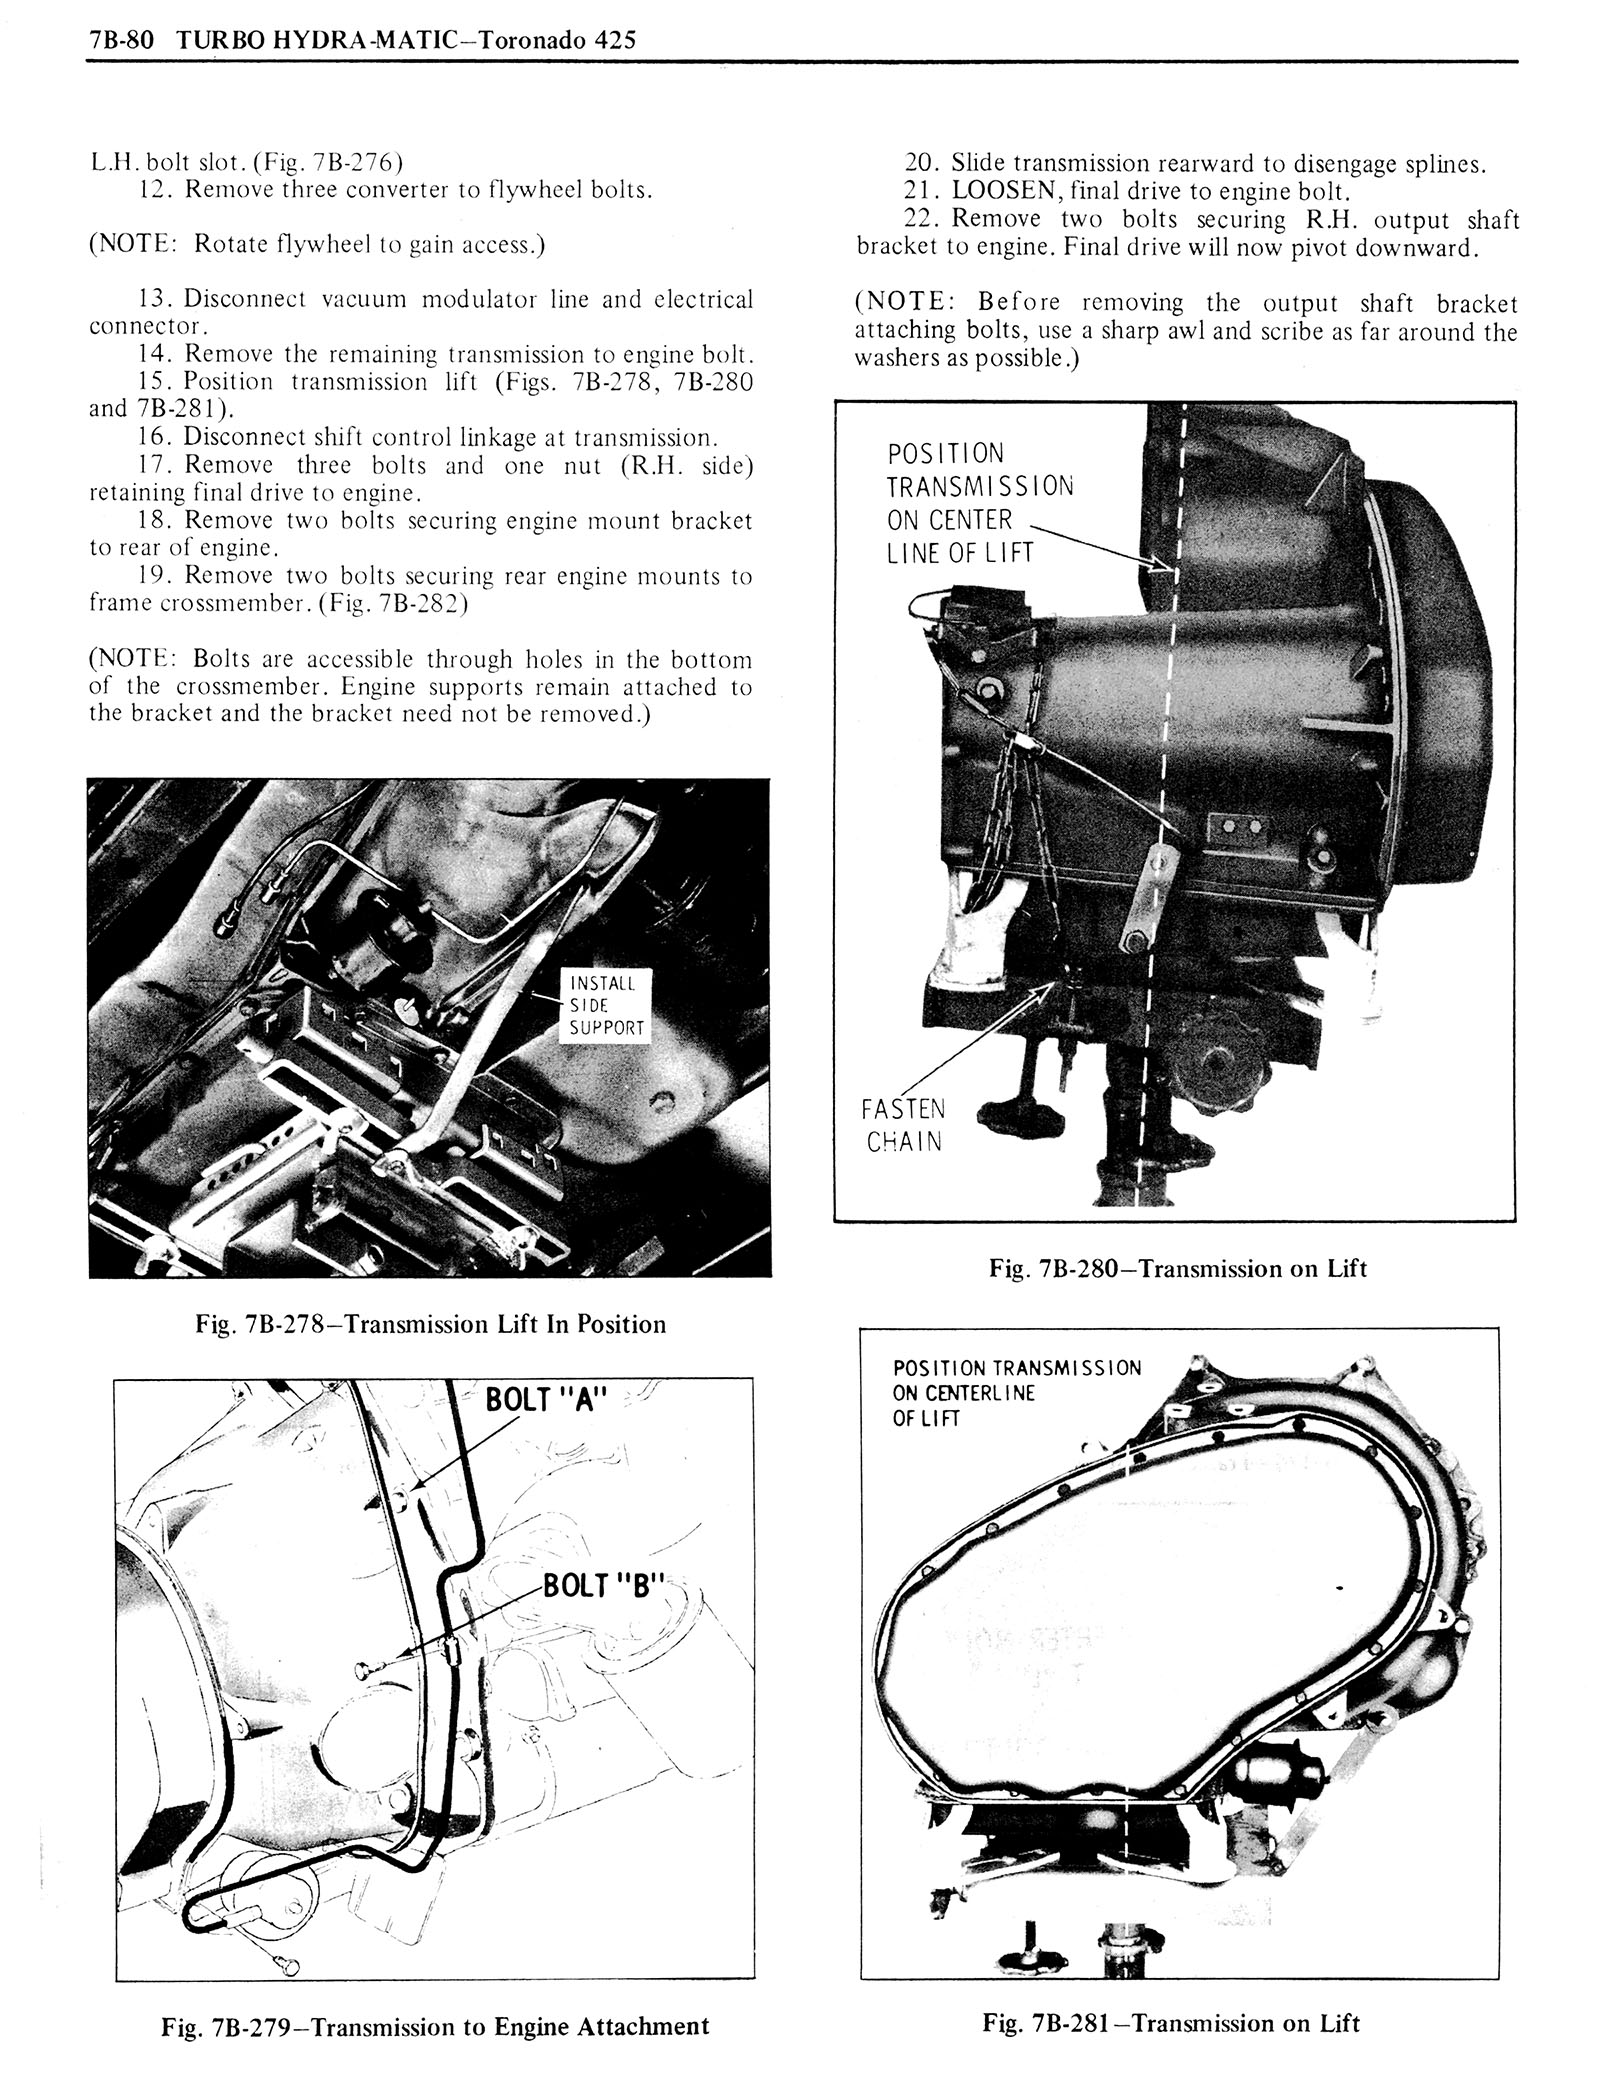 1976 Oldsmobile Service Manual page 812 of 1390